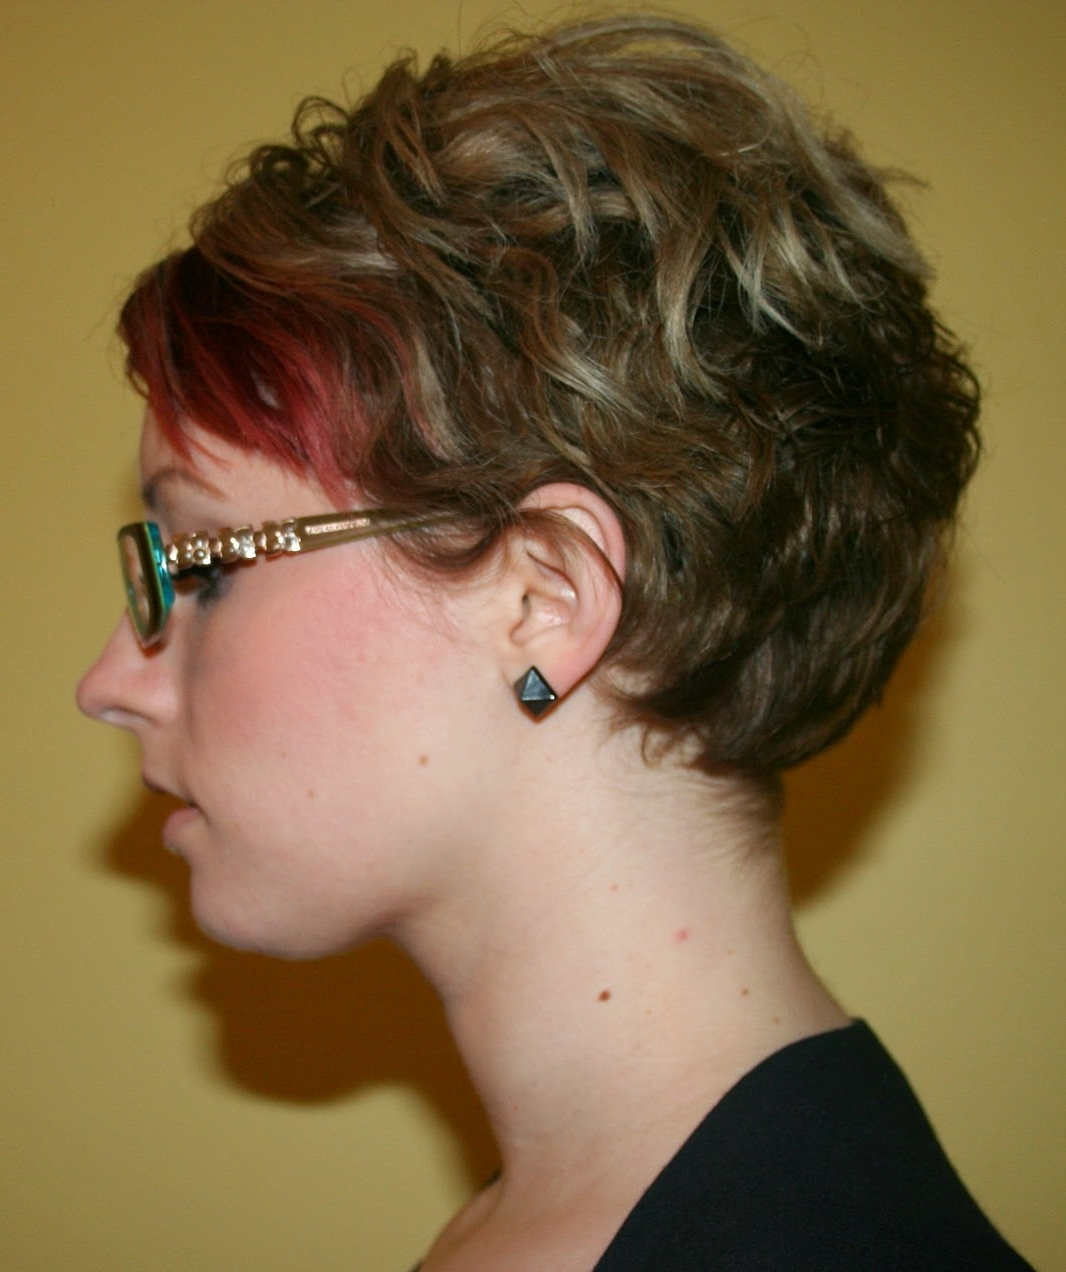 Popular Growing Out Pixie Hairstyles For Curly Hair Regarding Kt The Little Lady: Growing Out A Pixie Cut: In Between Hair Styles (View 14 of 20)